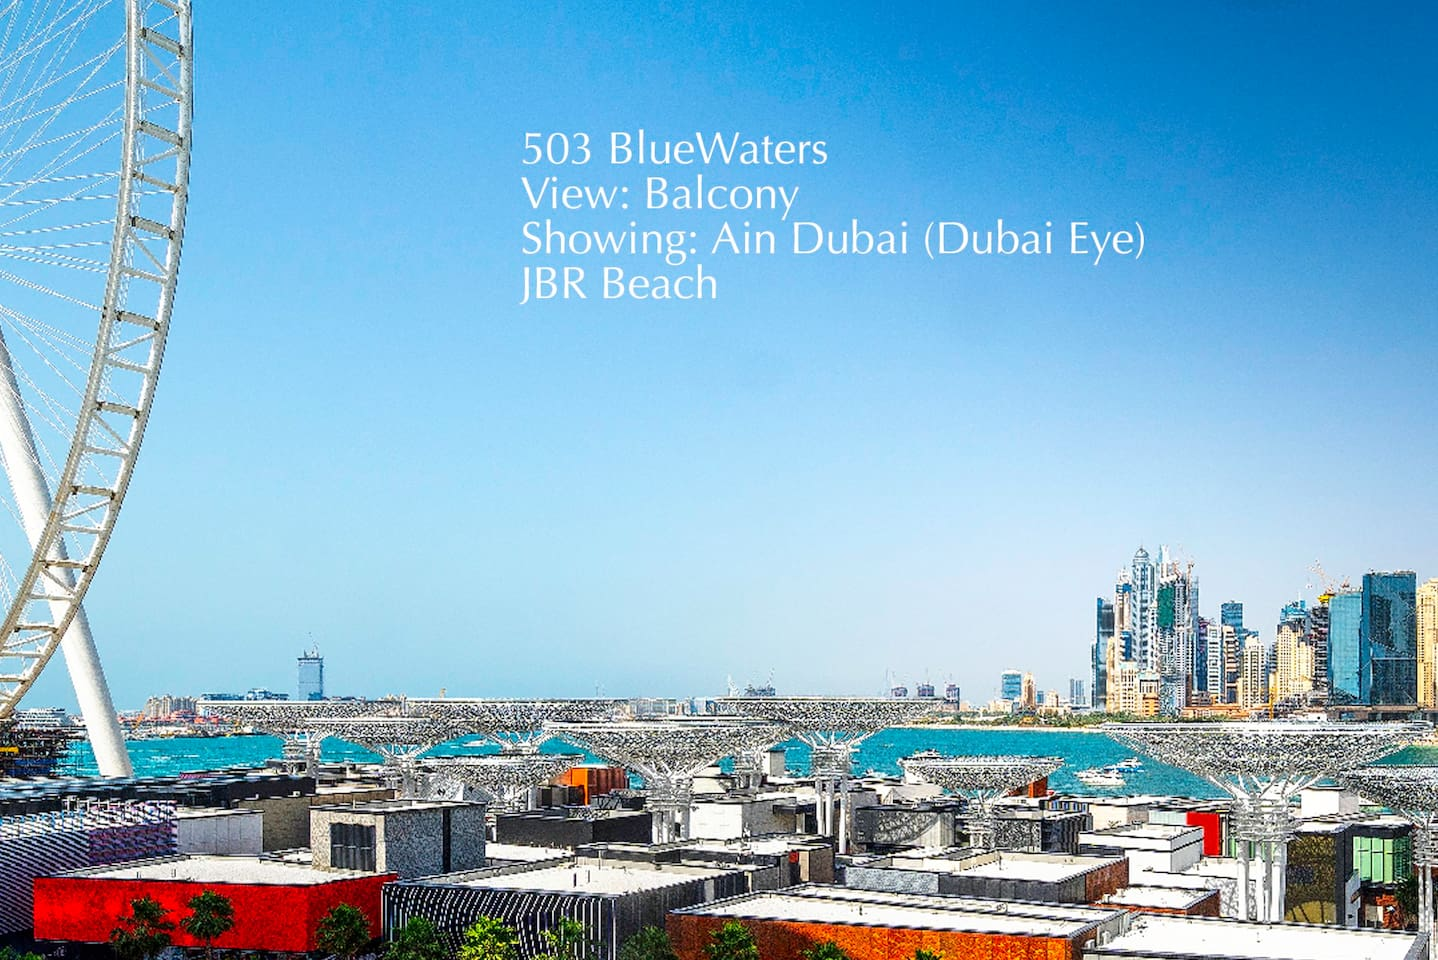 View from the L-Shaped balcony. Ain Dubai and the entire JBR Beach is visible, in addition to the neighborhood on the Bluewaters Island.